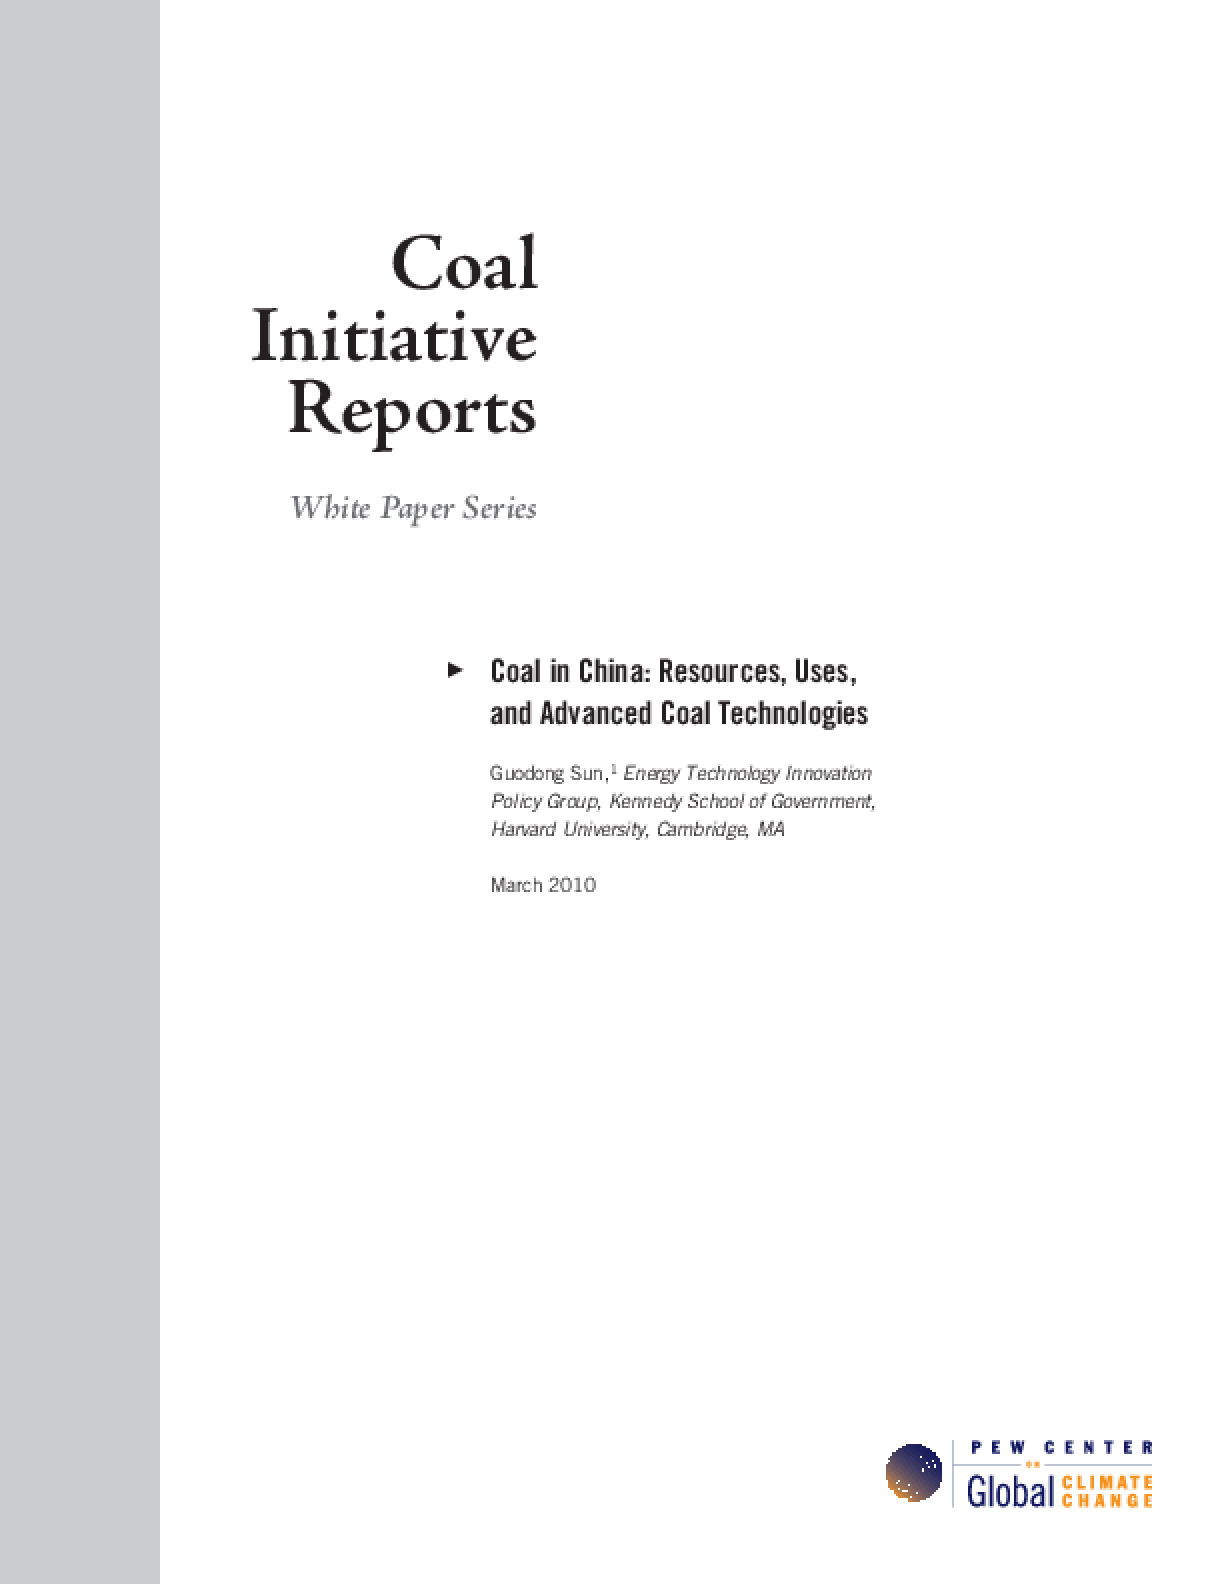 Coal in China: Resources, Uses, and Advanced Coal Technologies